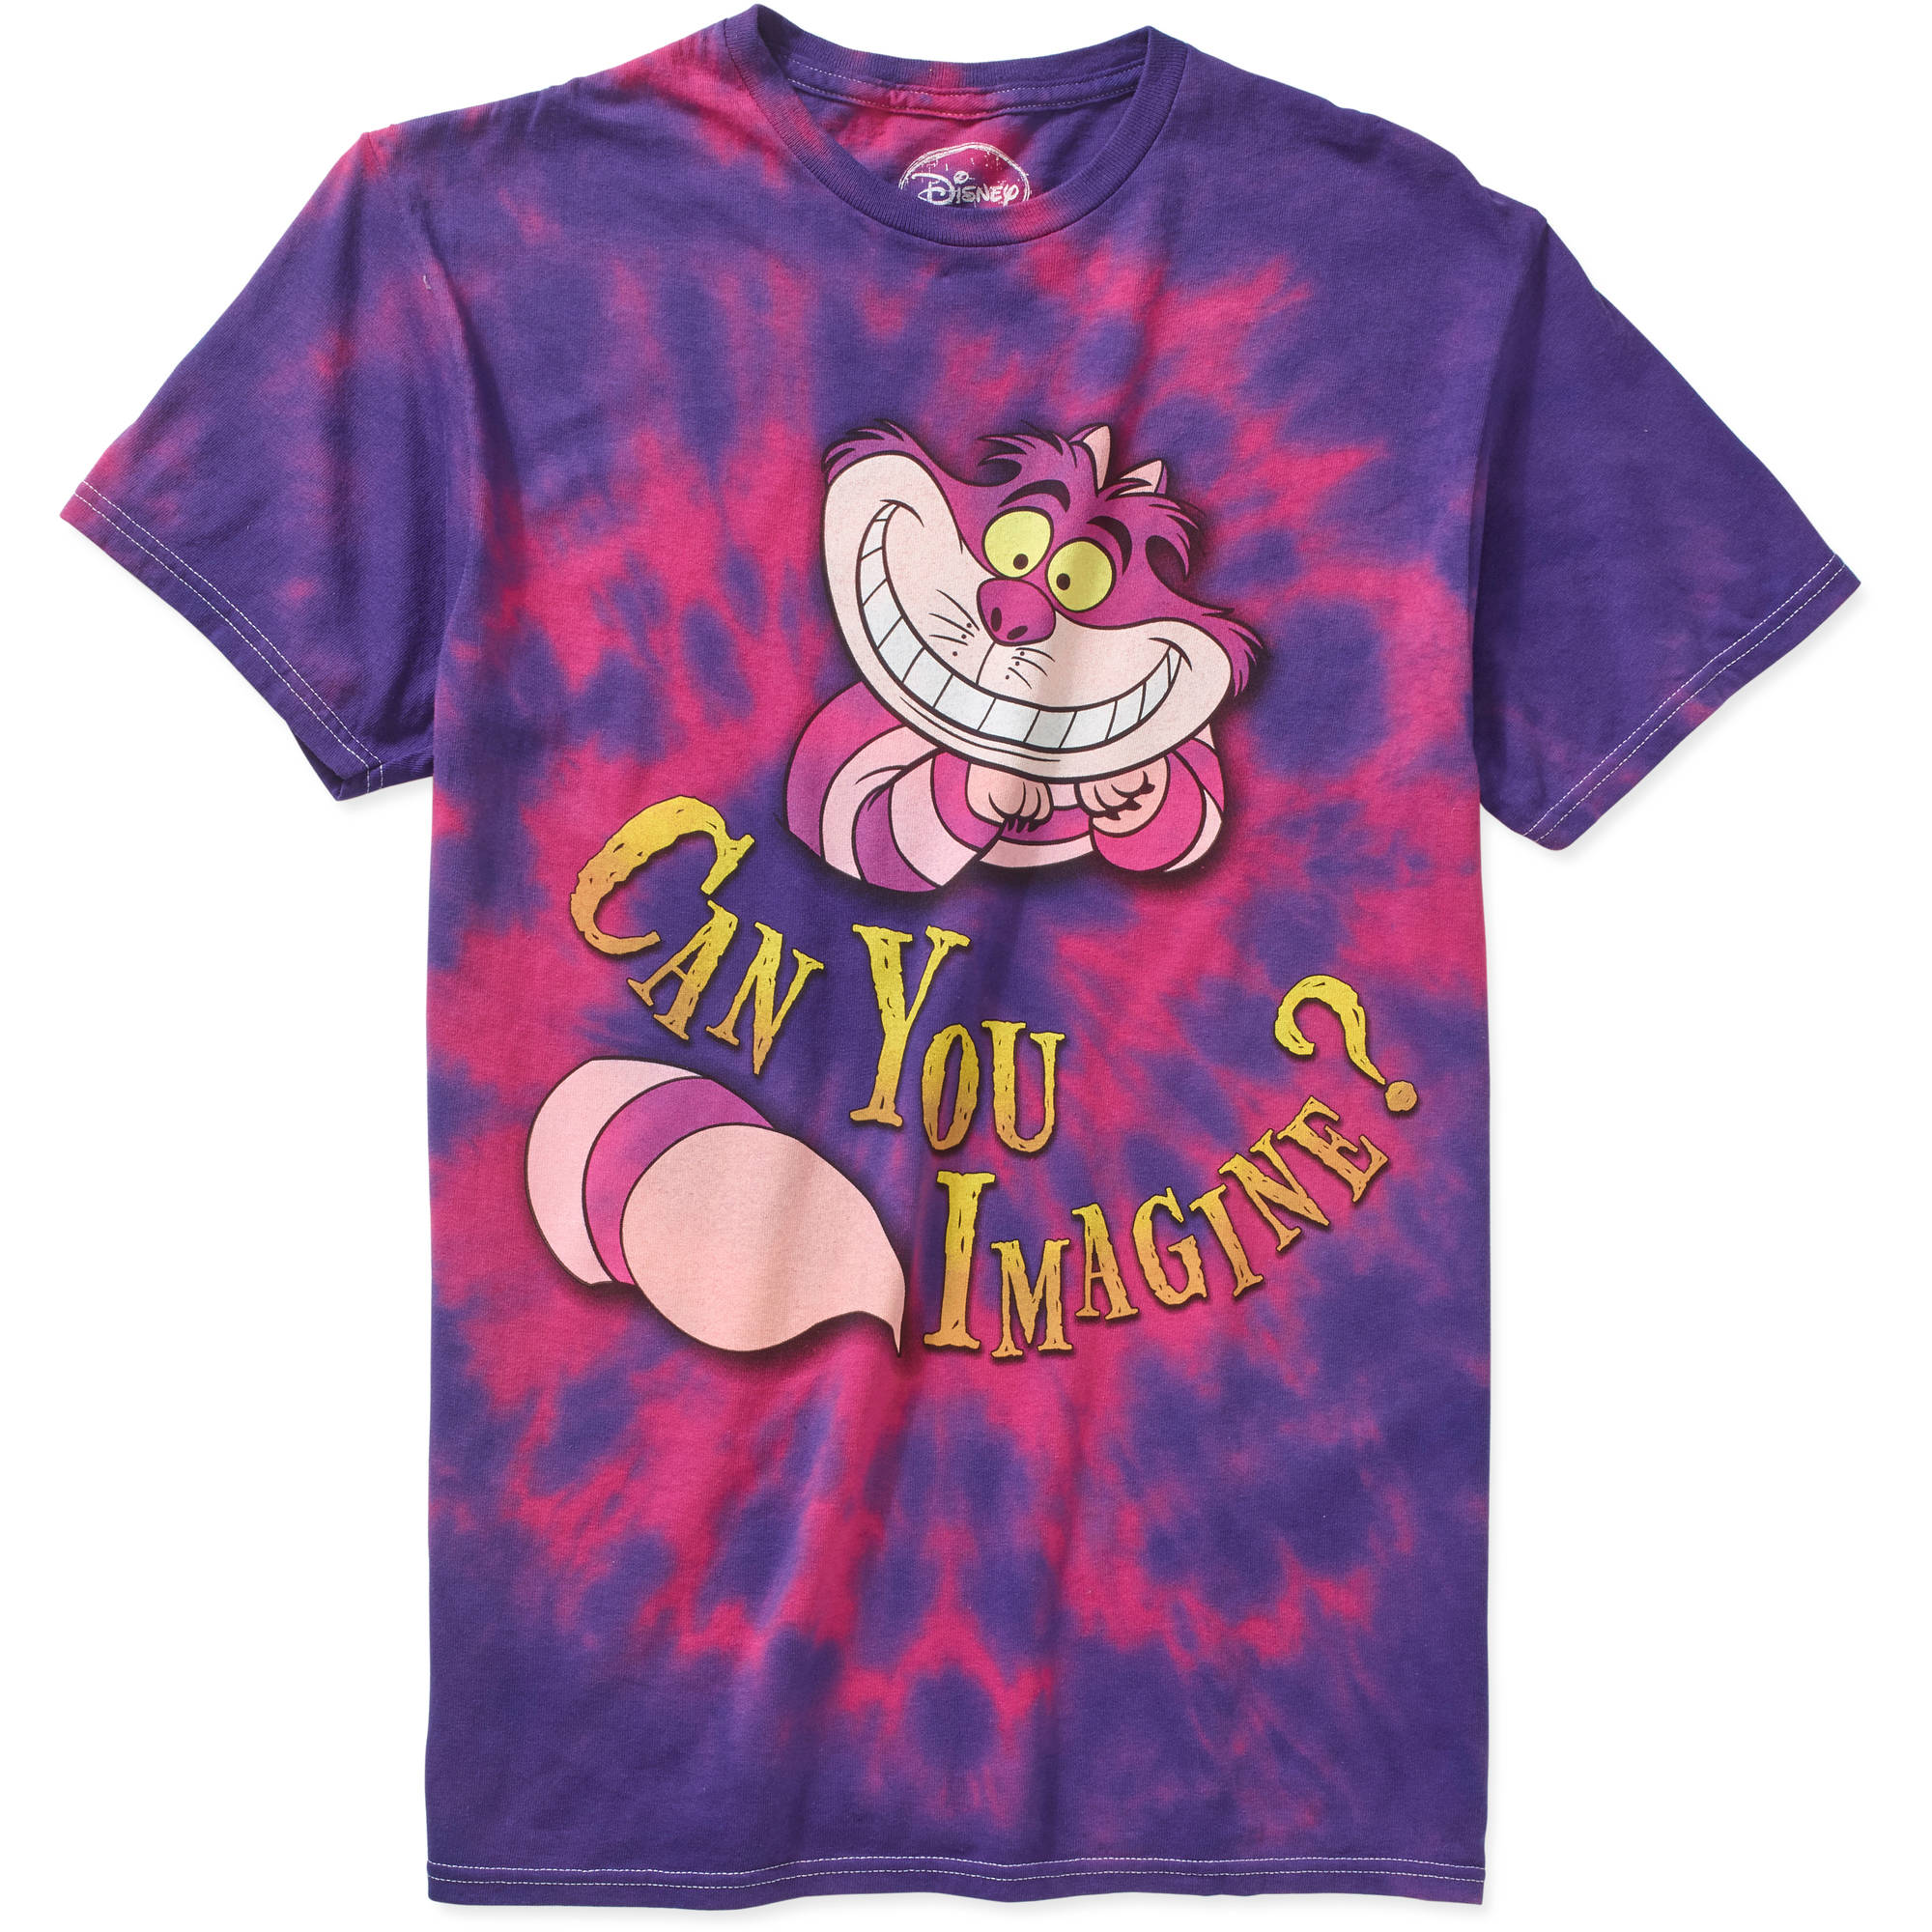 Wonderland Hairball Men's Graphic Tee